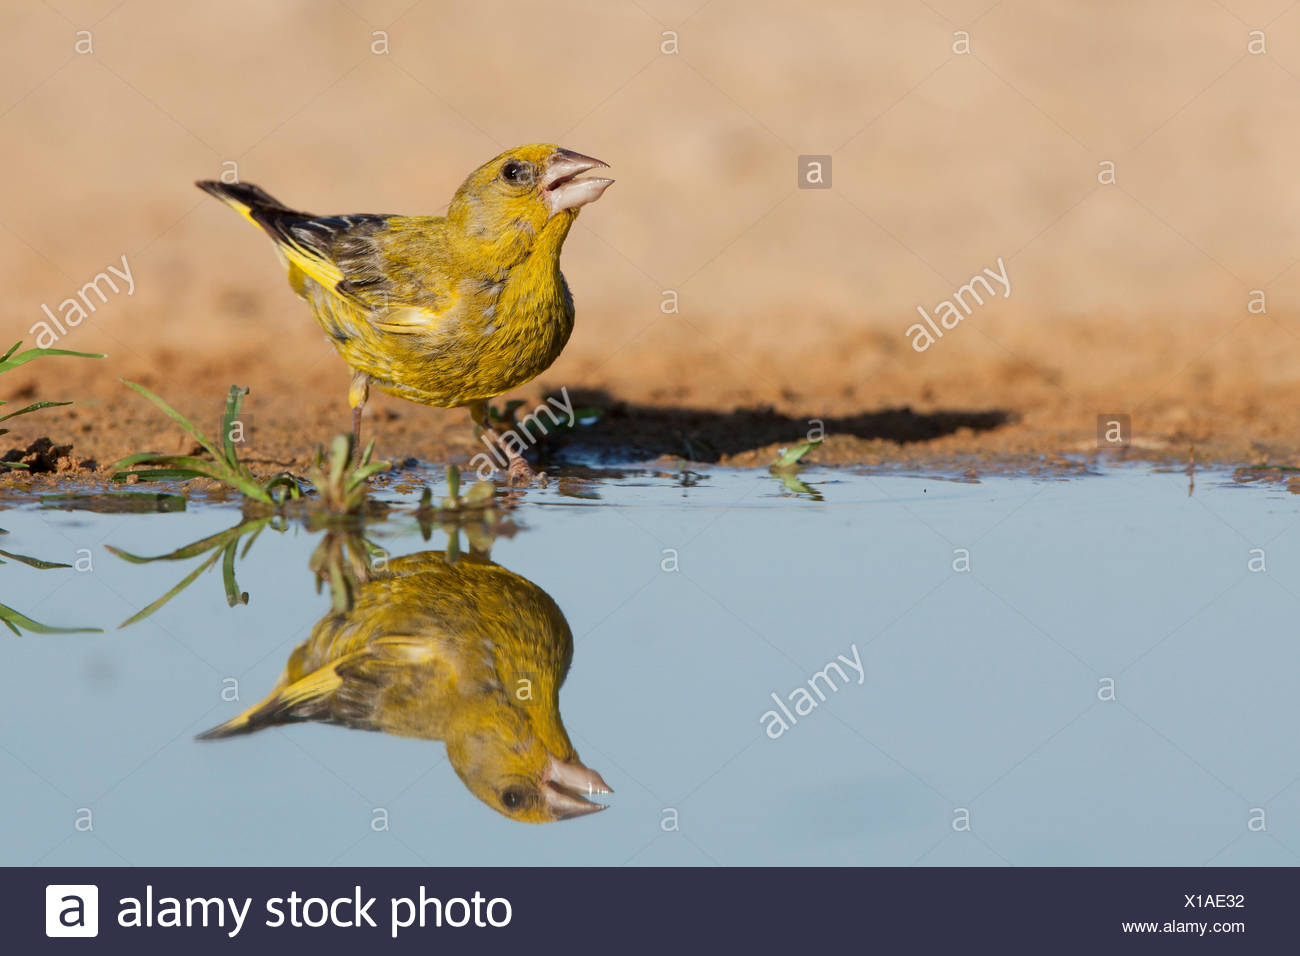 European Greenfinch (Carduelis chloris)  a small passerine bird in the finch family Fringillidae. Photographed near a puddle of  - Stock Image